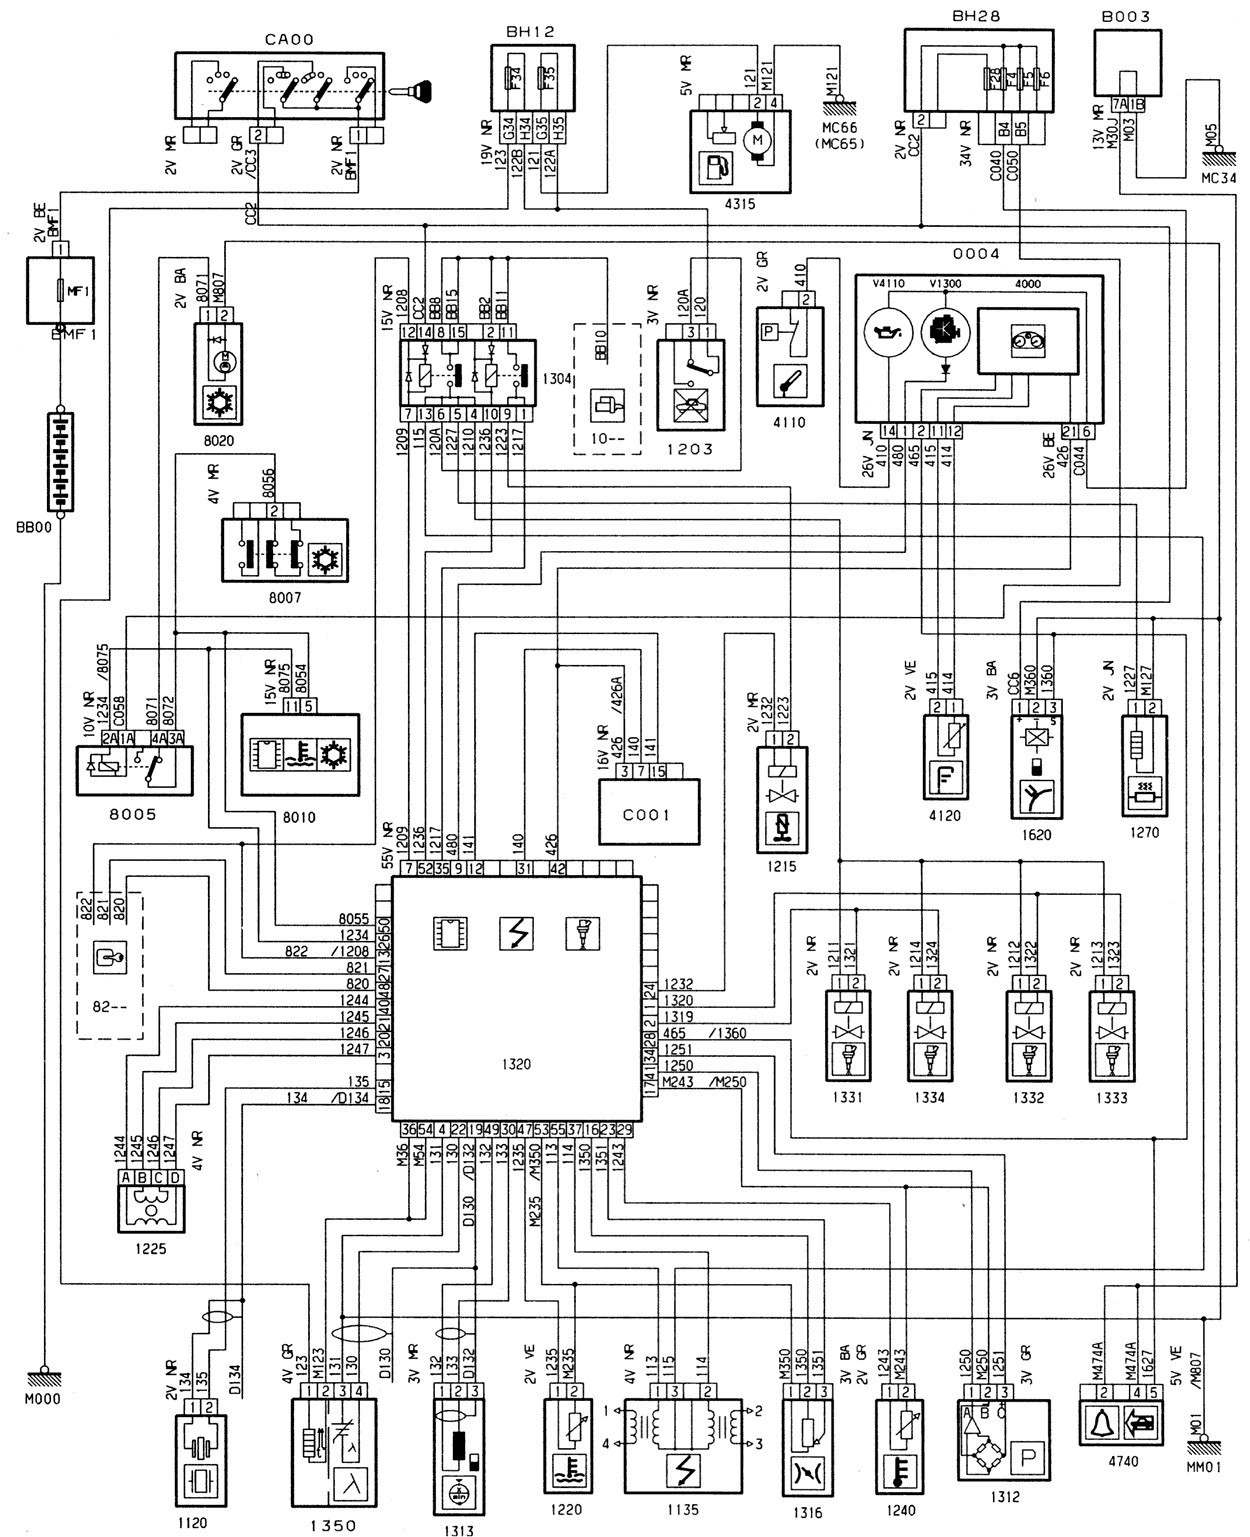 gti engine diagram wiring library peugeot 207 rally peugeot 206 engine diagram peugeot wiring diagrams mesmerizing afif of peugeot 206 engine diagram 206 gti